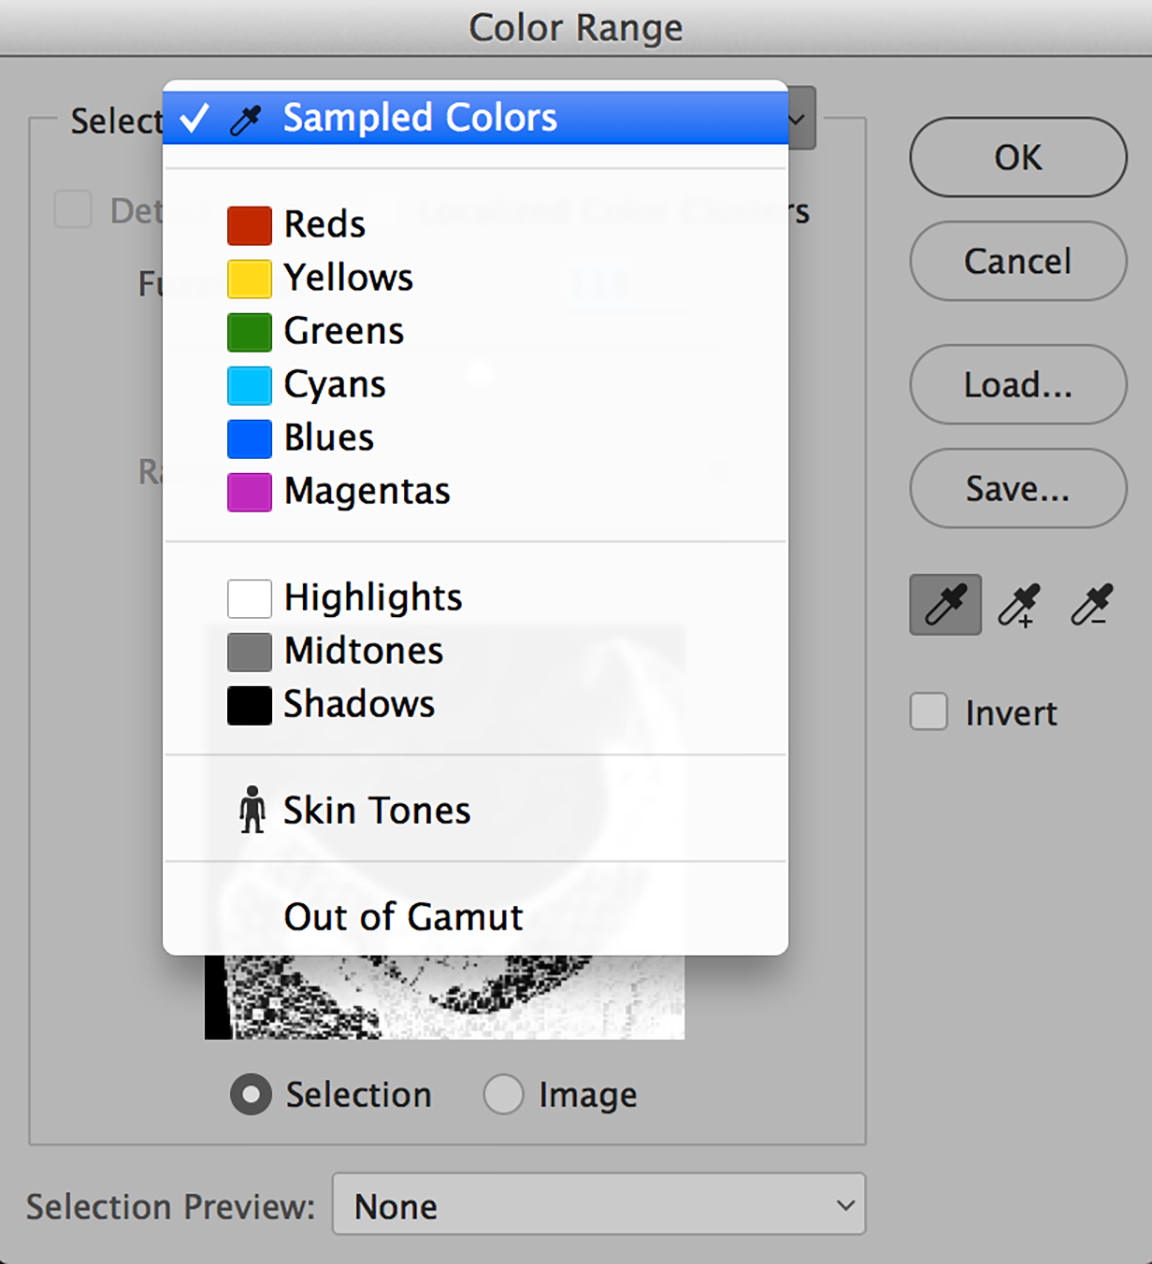 color range in photoshop sampled colors